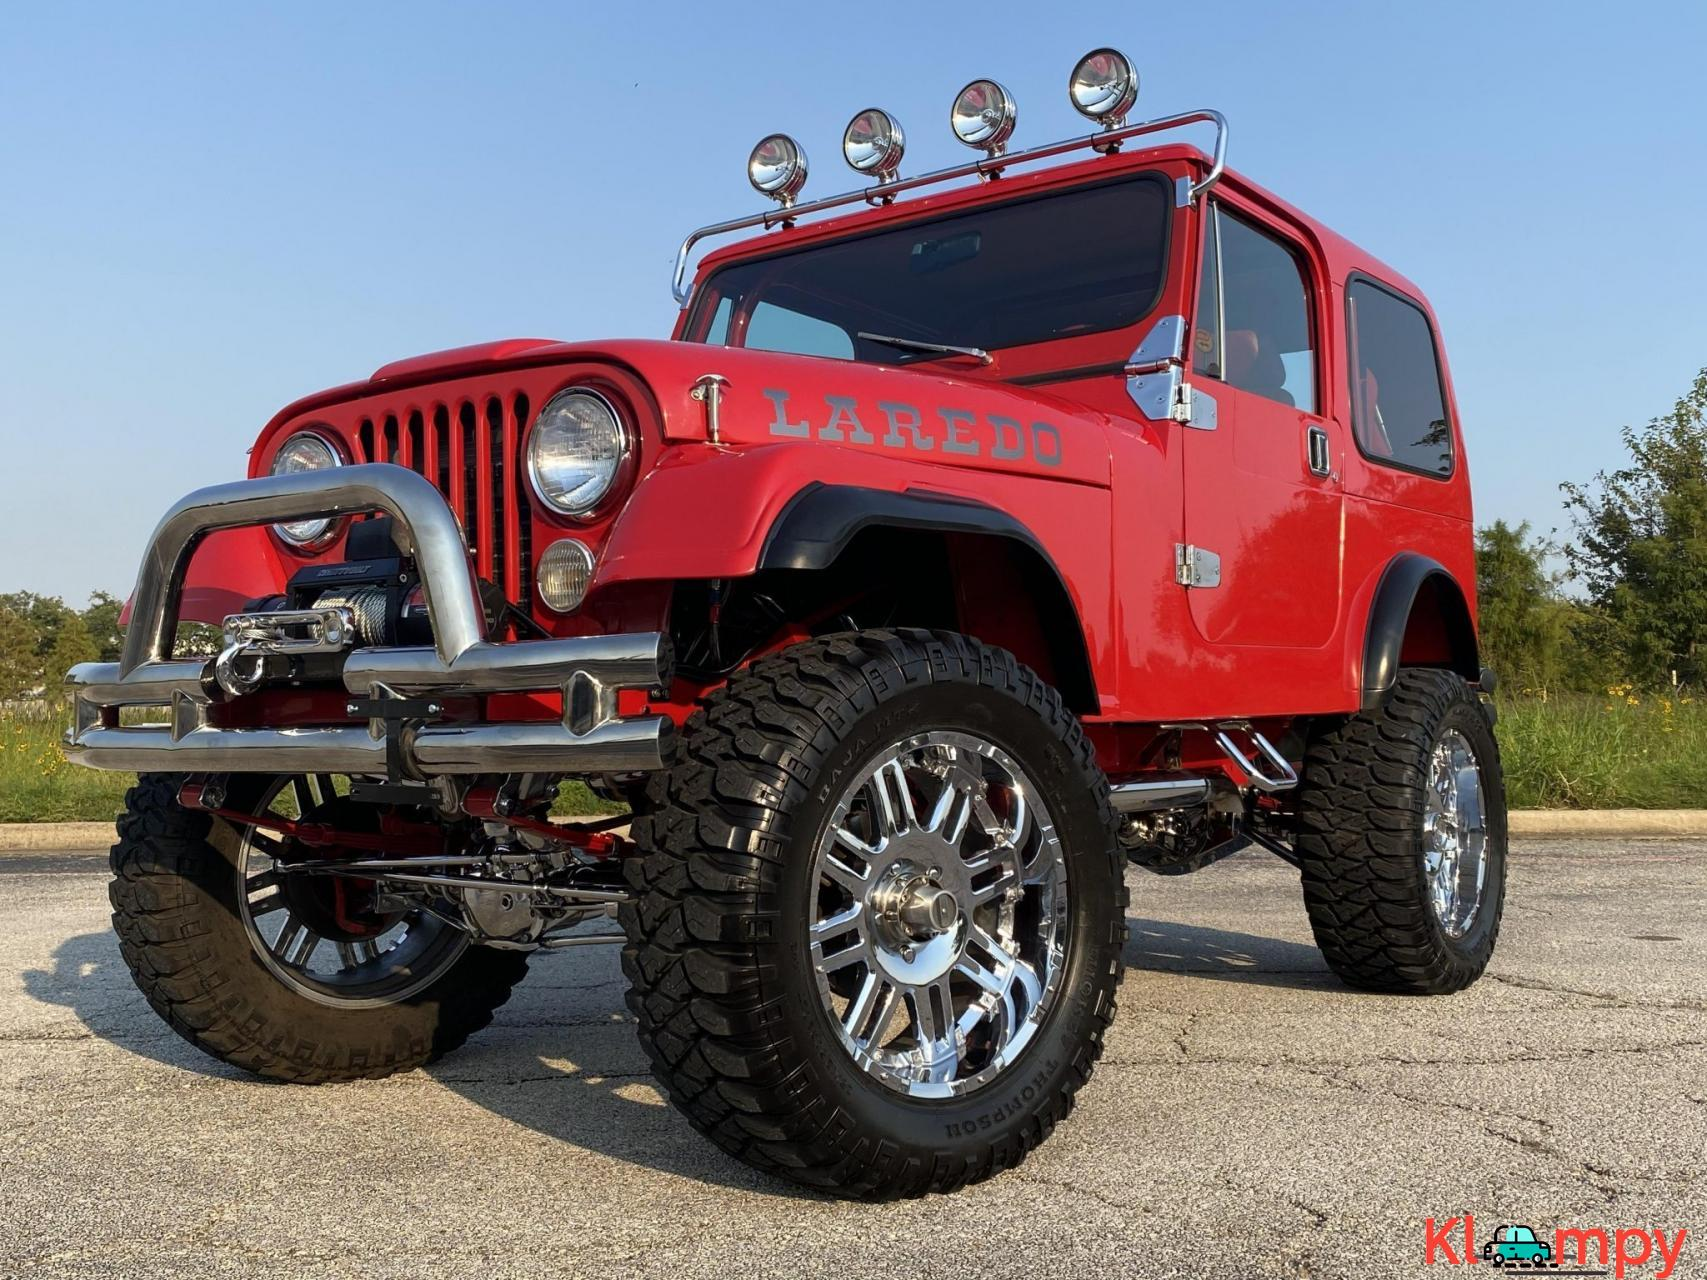 1983 Jeep CJ-7 Supercharged 350 V8 - 4/20